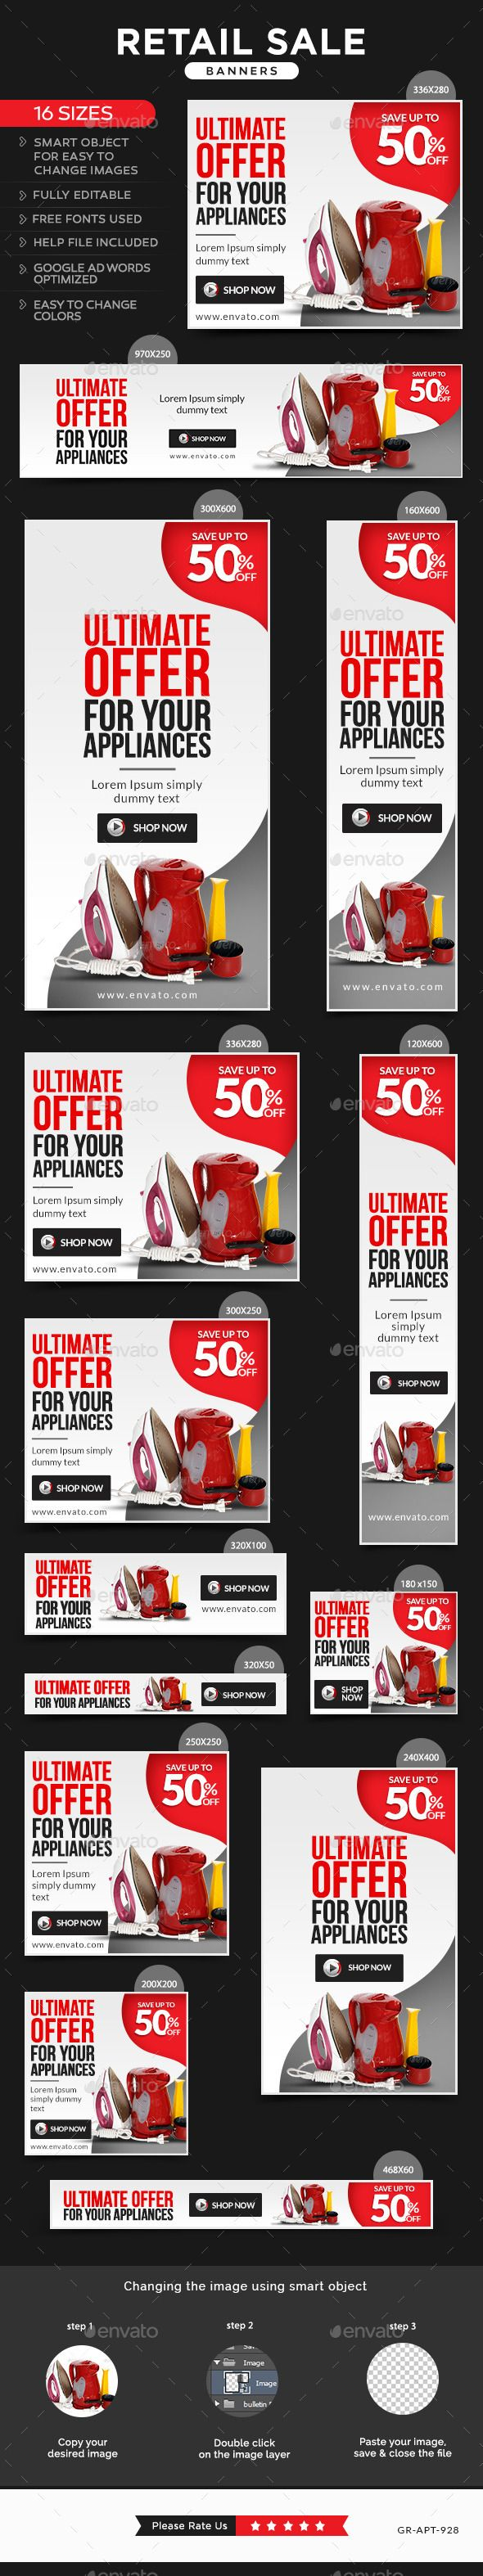 Retail Sale Web Banners Template PSD #design #ads Download: http://graphicriver.net/item/retail-sale-banners/13164052?ref=ksioks